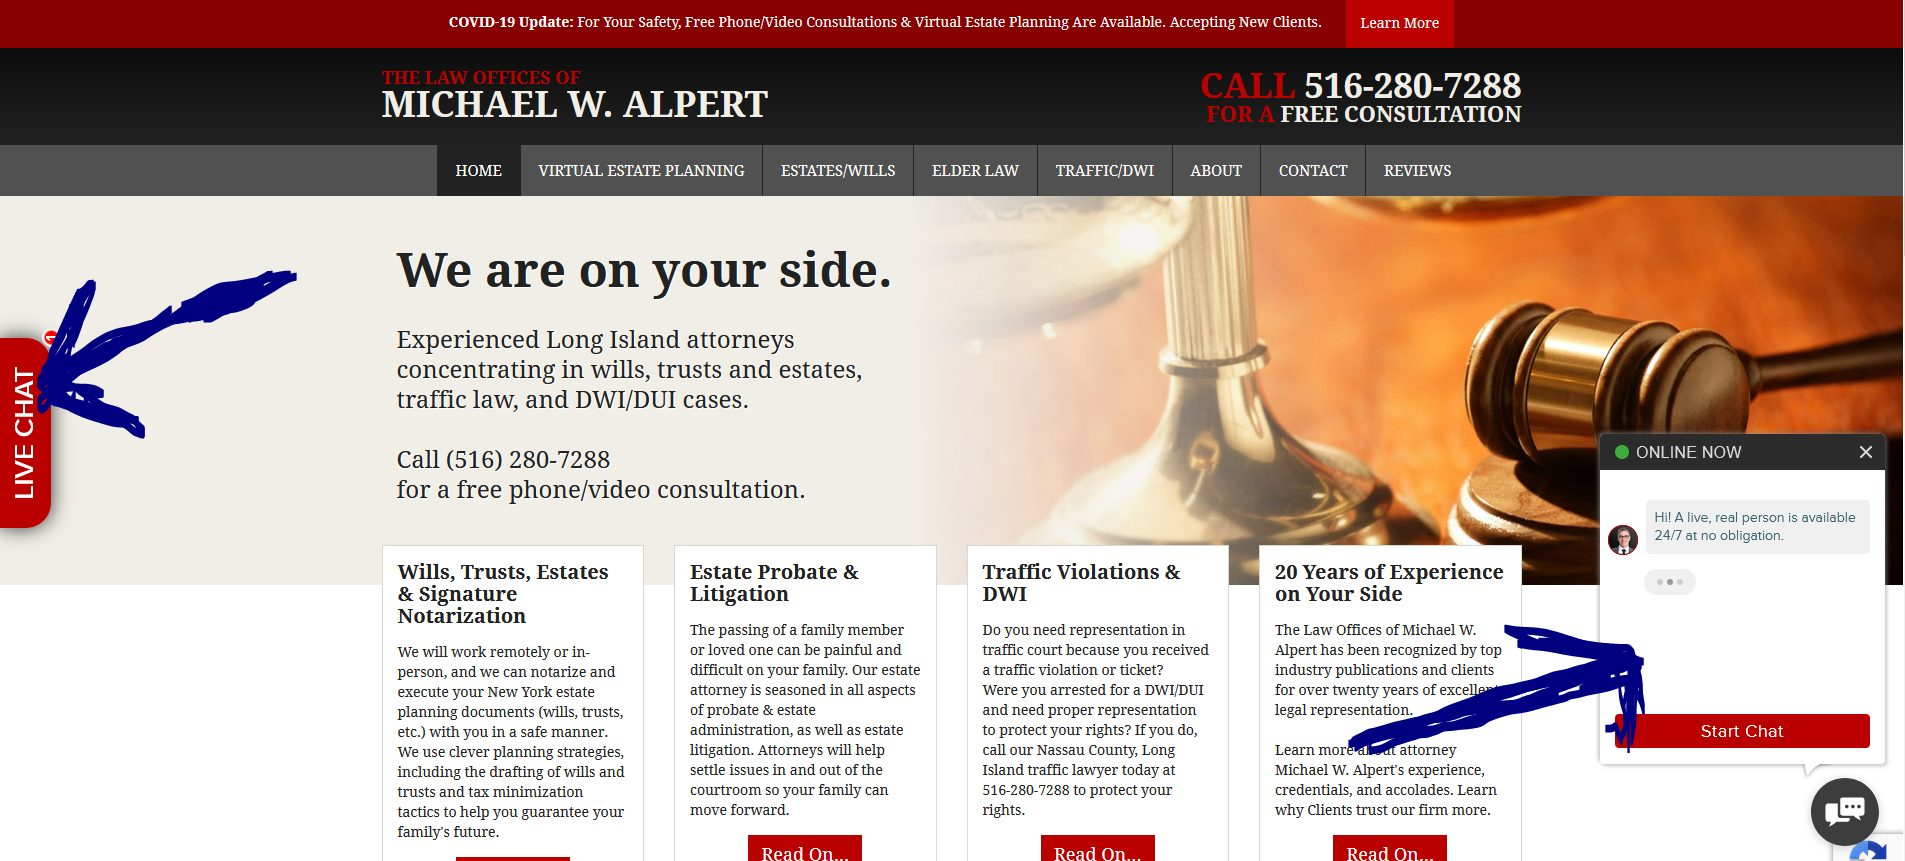 The Law Offices of Michael W. Alpert offers chat service on website